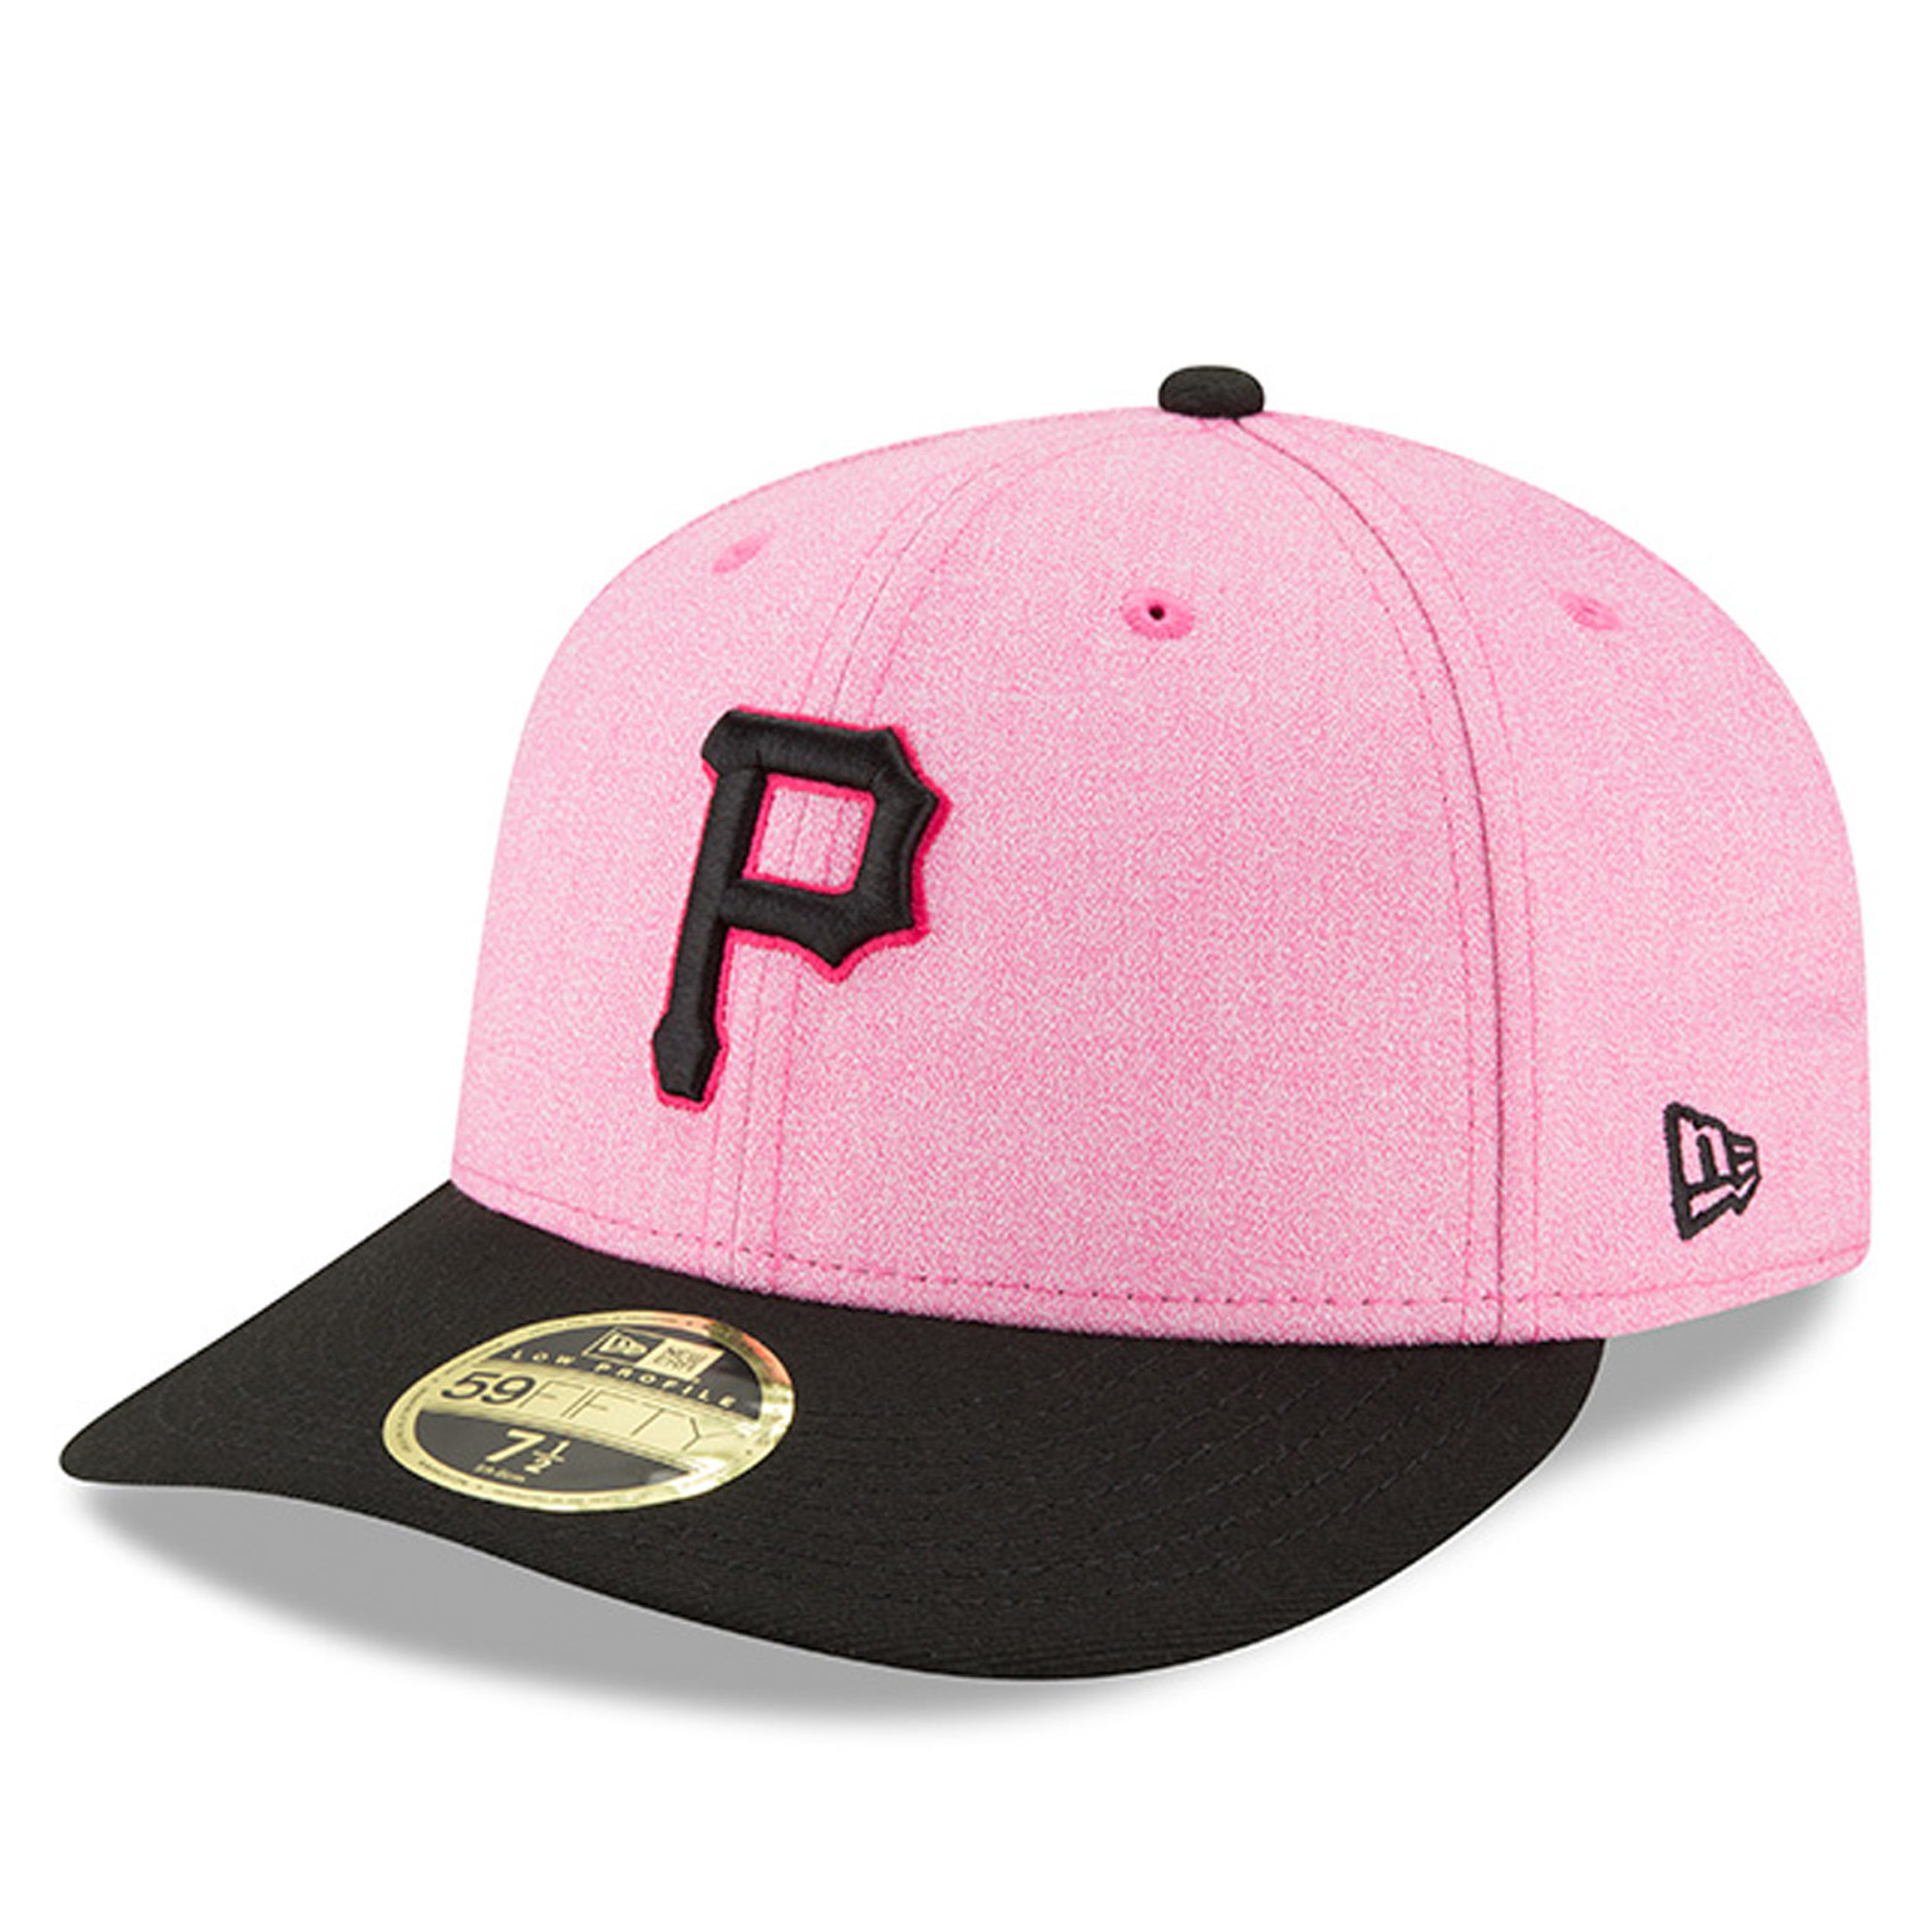 Pittsburgh Pirates New Era 2018 Mother's Day On-Field Low Profile 59FIFTY Fitted Hat - Pink/Black